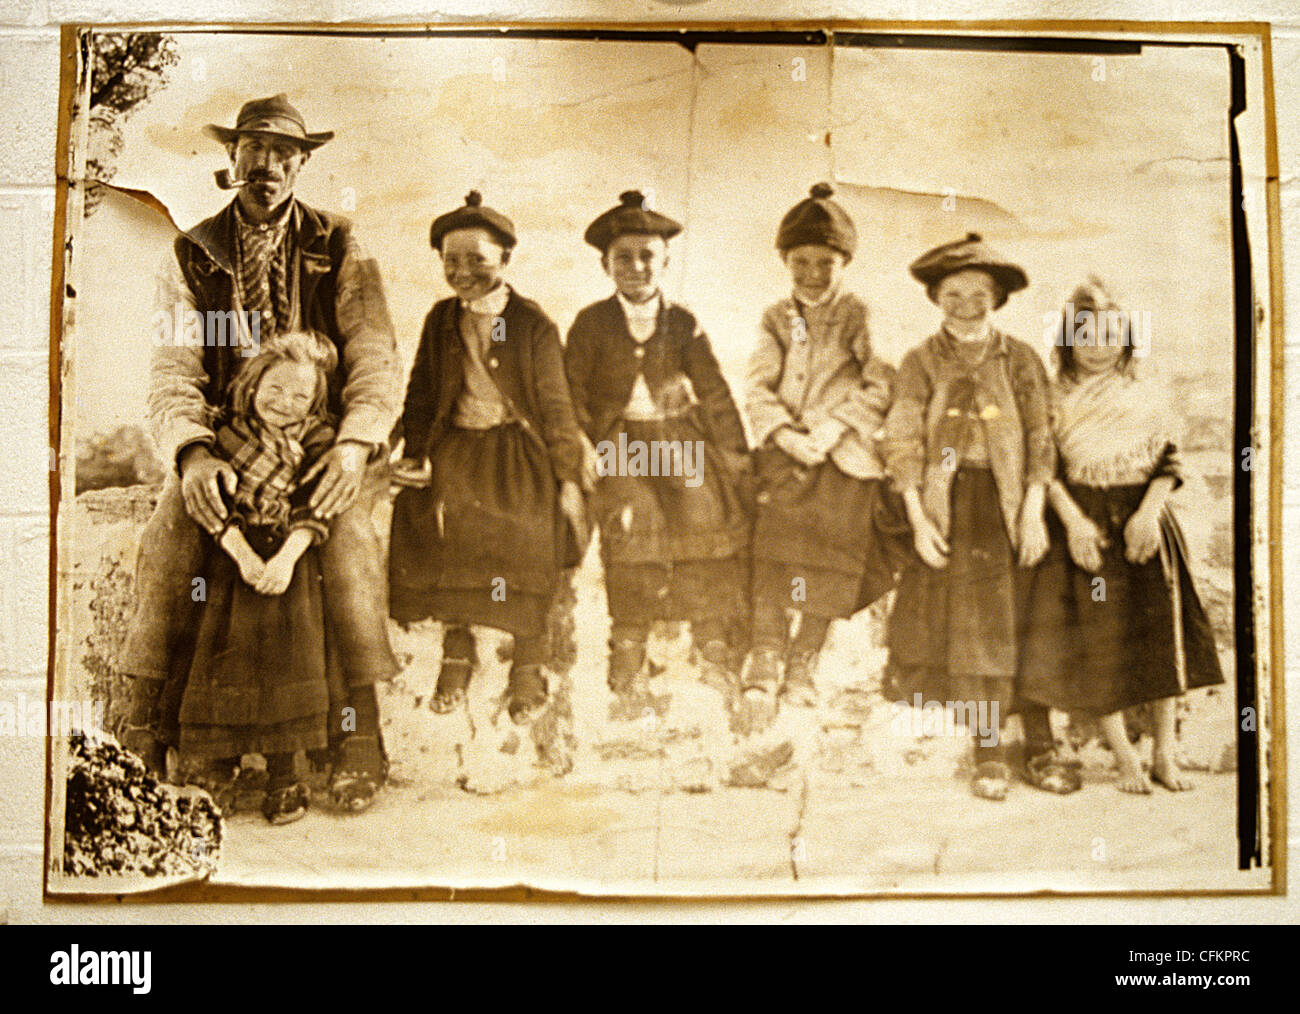 Copy of a vintage sepia photograph  of Aran Islanders wearing characteristic island dress, - Stock Image